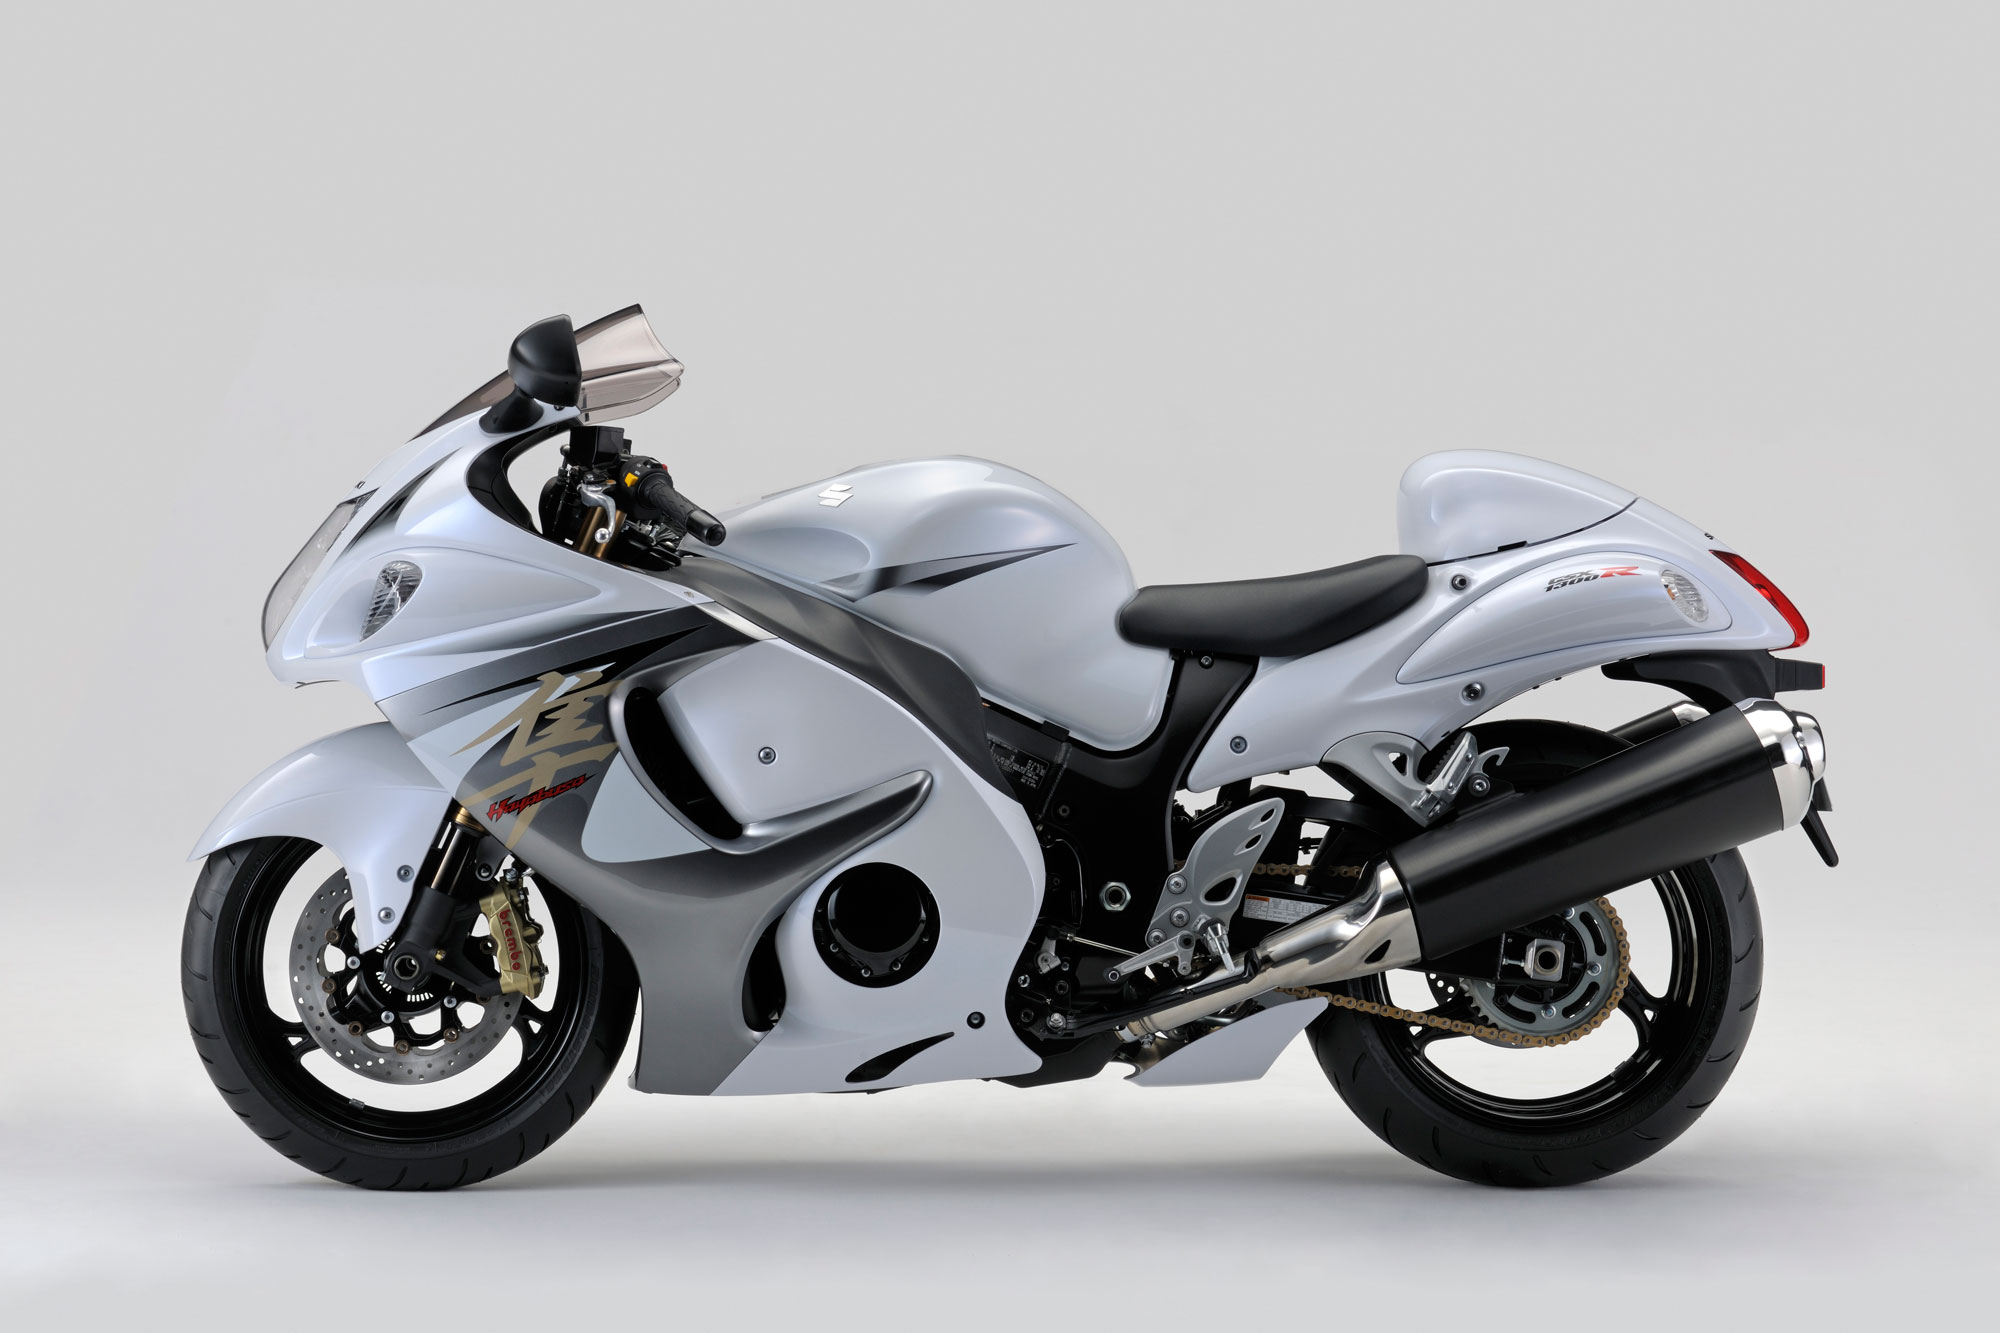 2013 Suzuki Hayabusa Gsx1300r Abs Review Total | 2016 Car Release Date